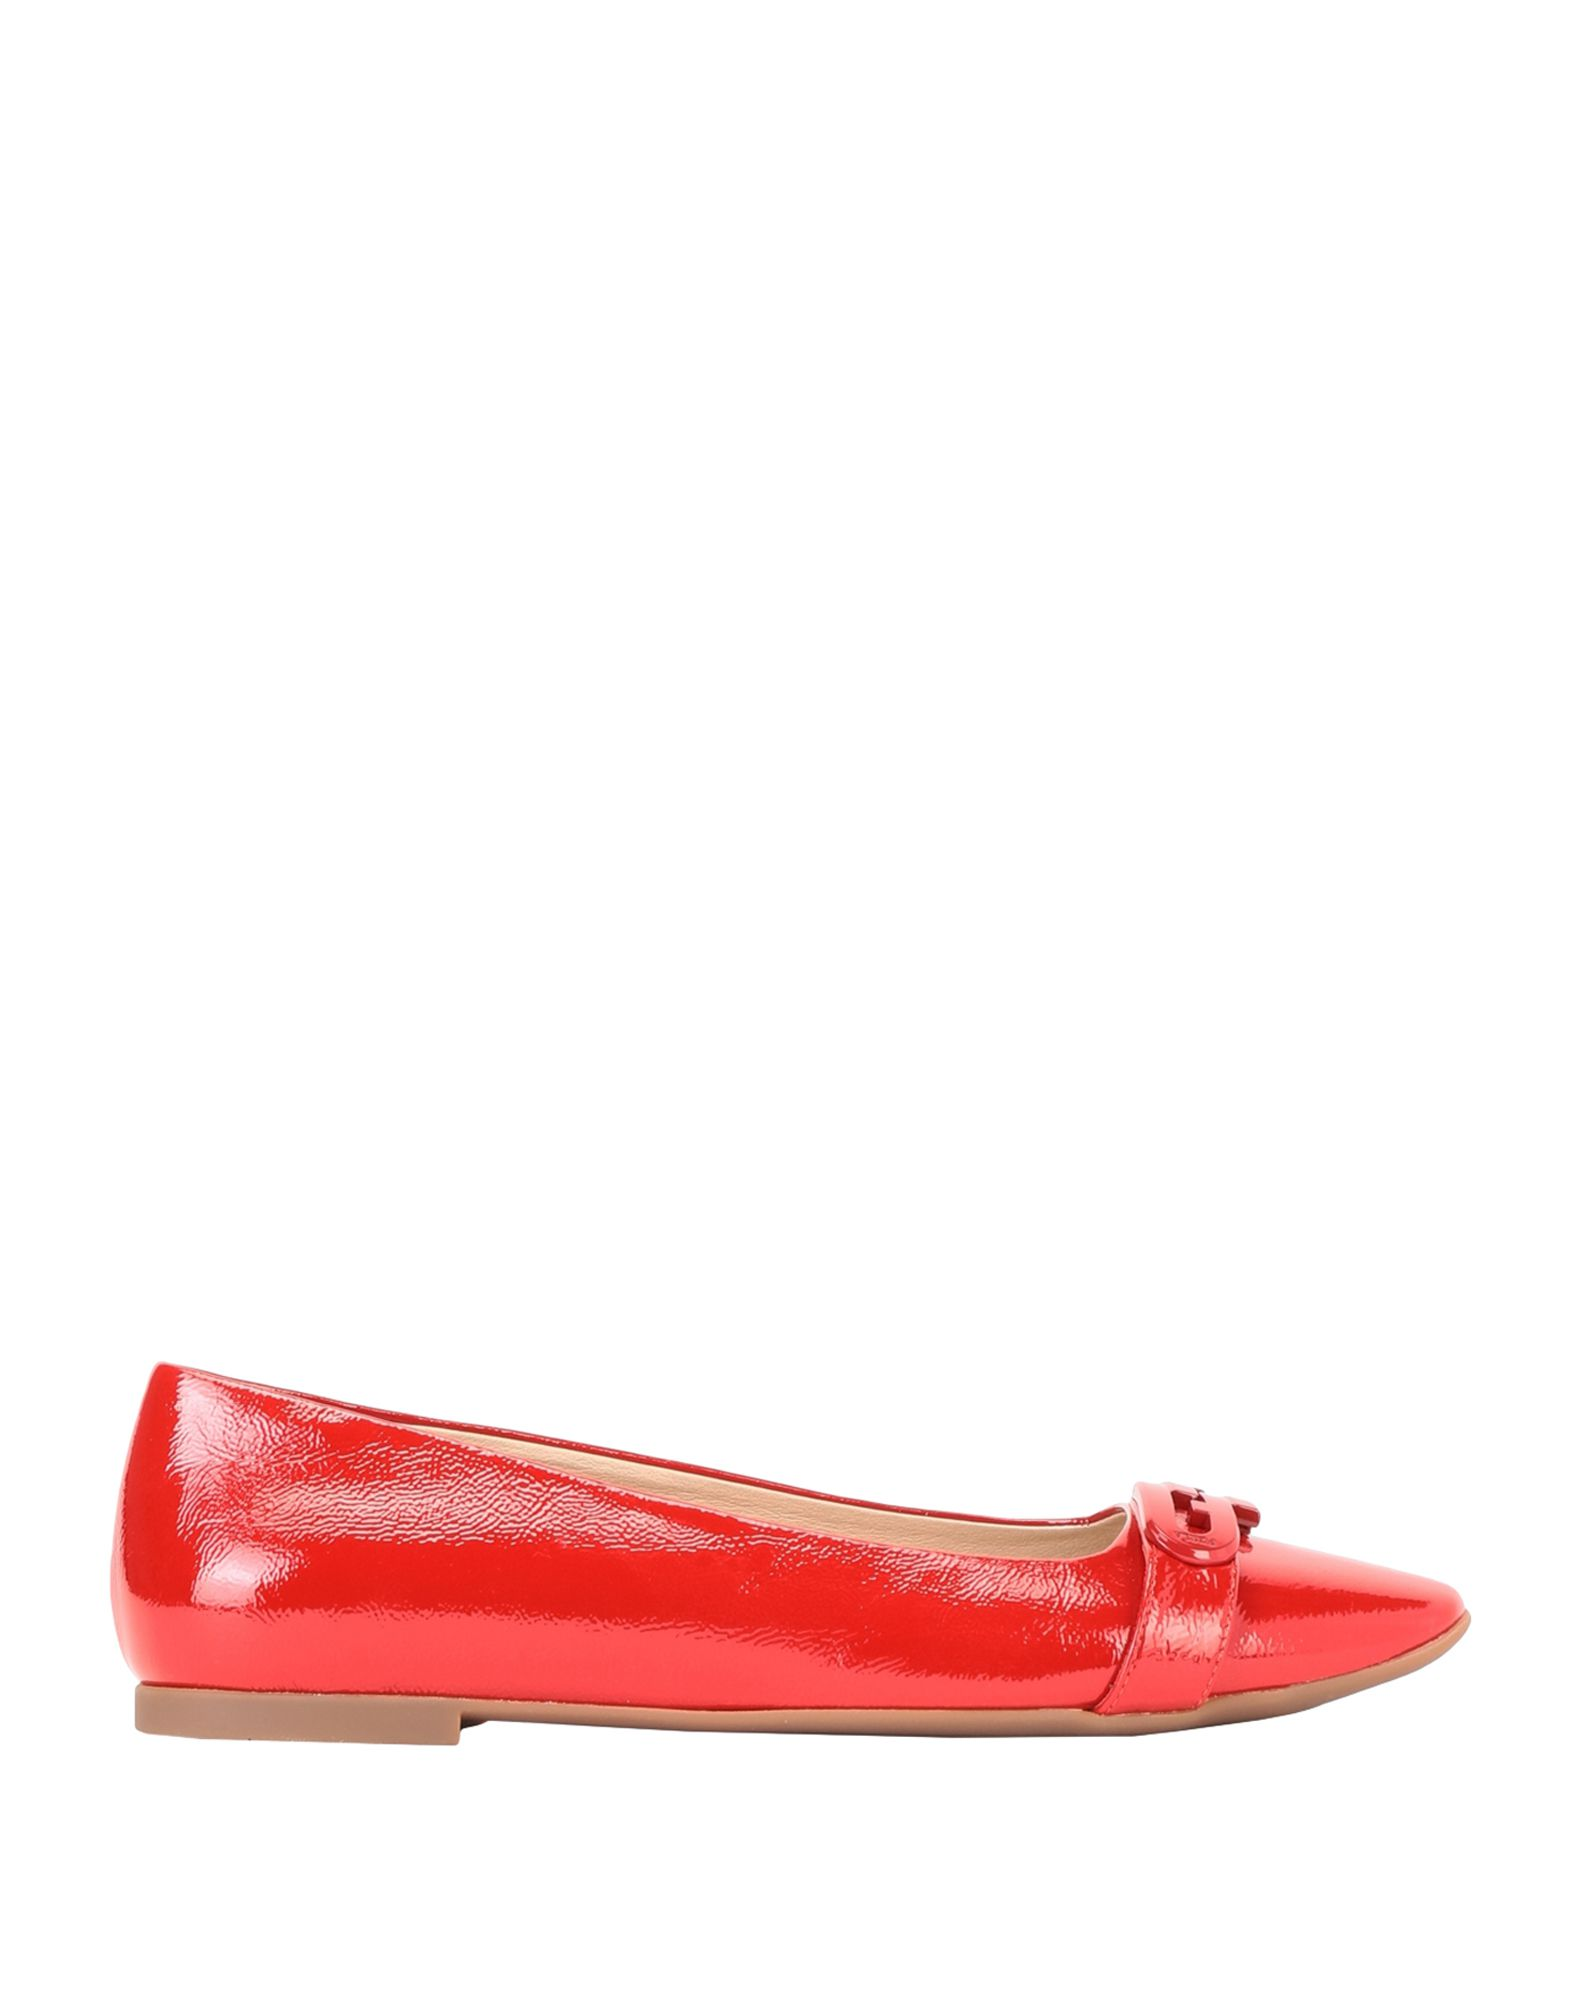 FURLA Ballet flats. varnished effect, logo, solid color, round toeline, flat, leather lining, rubber sole, contains non-textile parts of animal origin. 100% Soft Leather